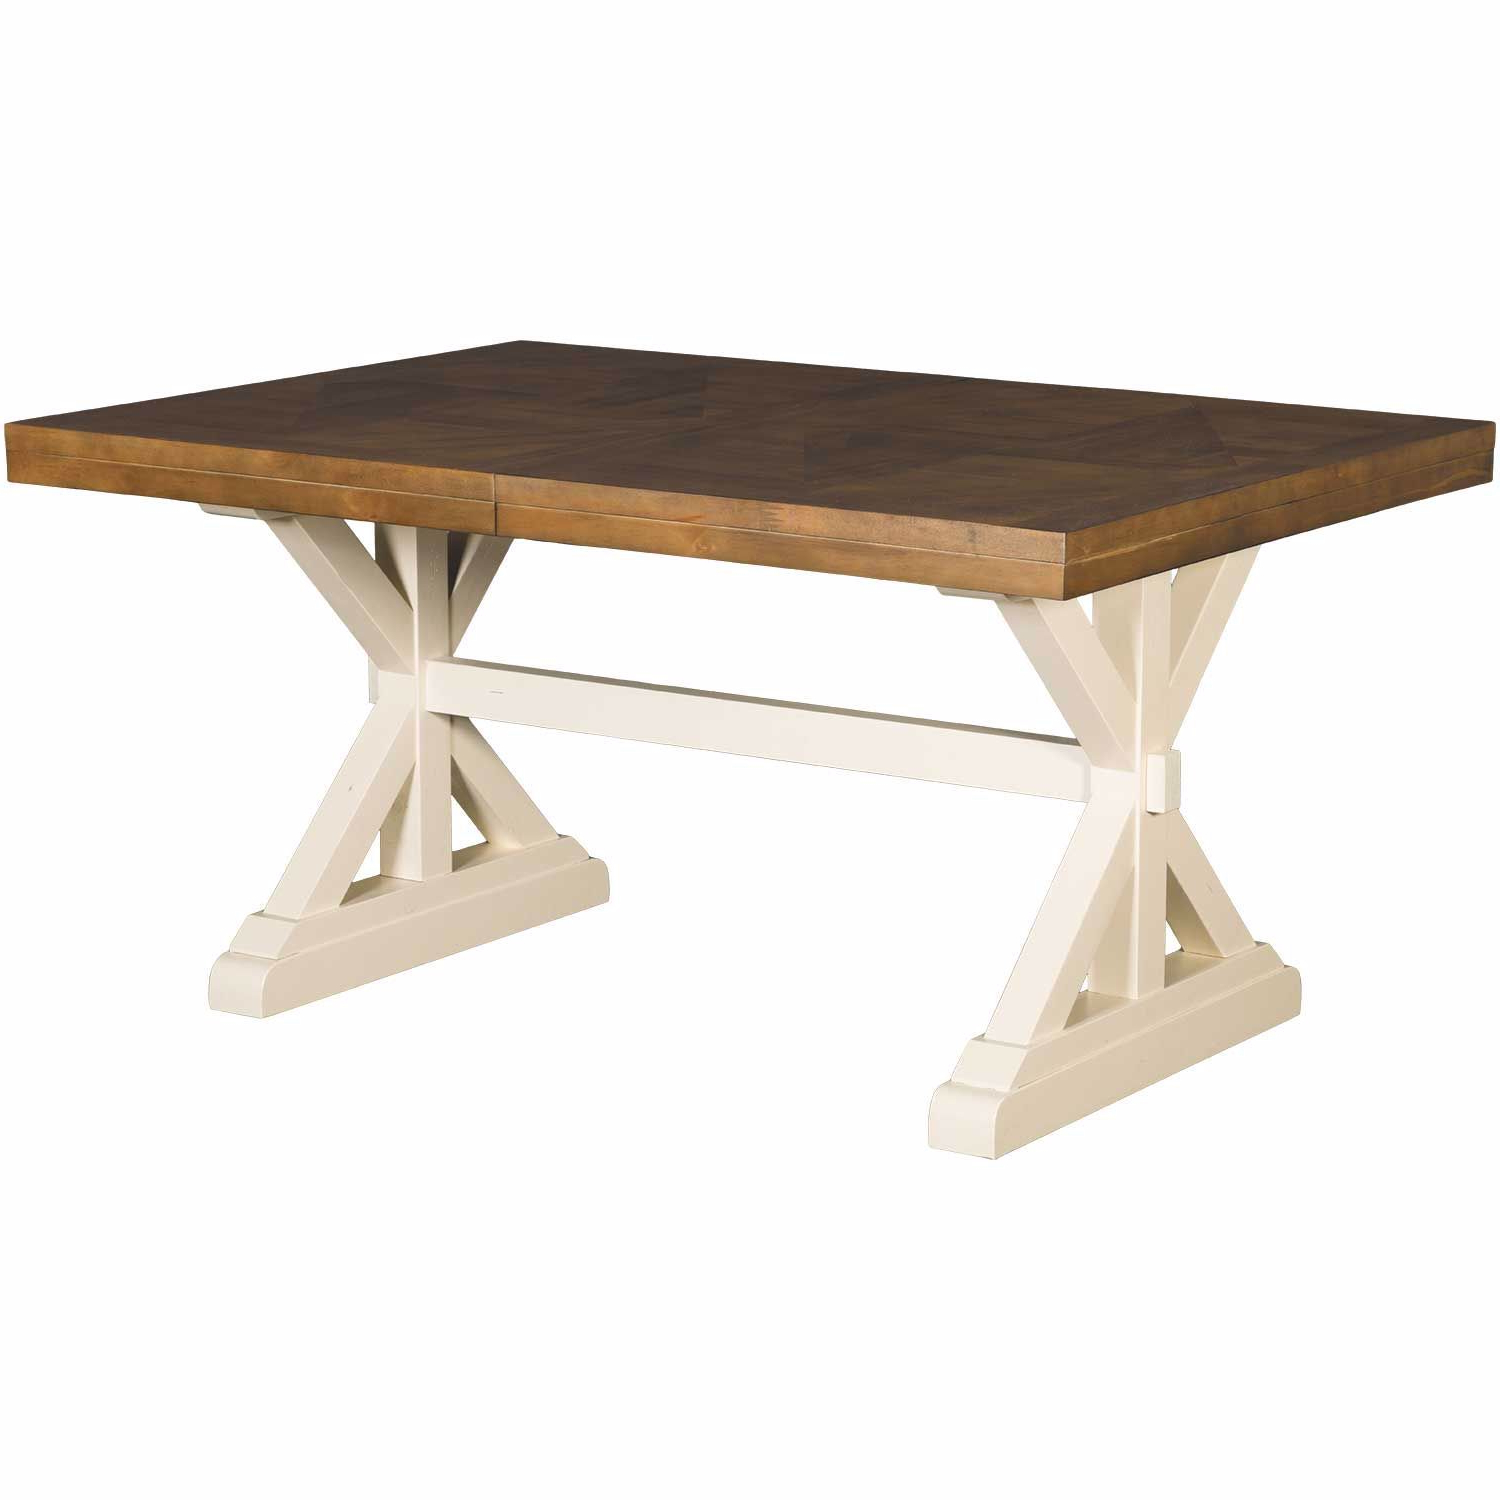 Well Liked Park Creek Rectangular Dining Table Pertaining To Rectangular Dining Tables (View 17 of 25)